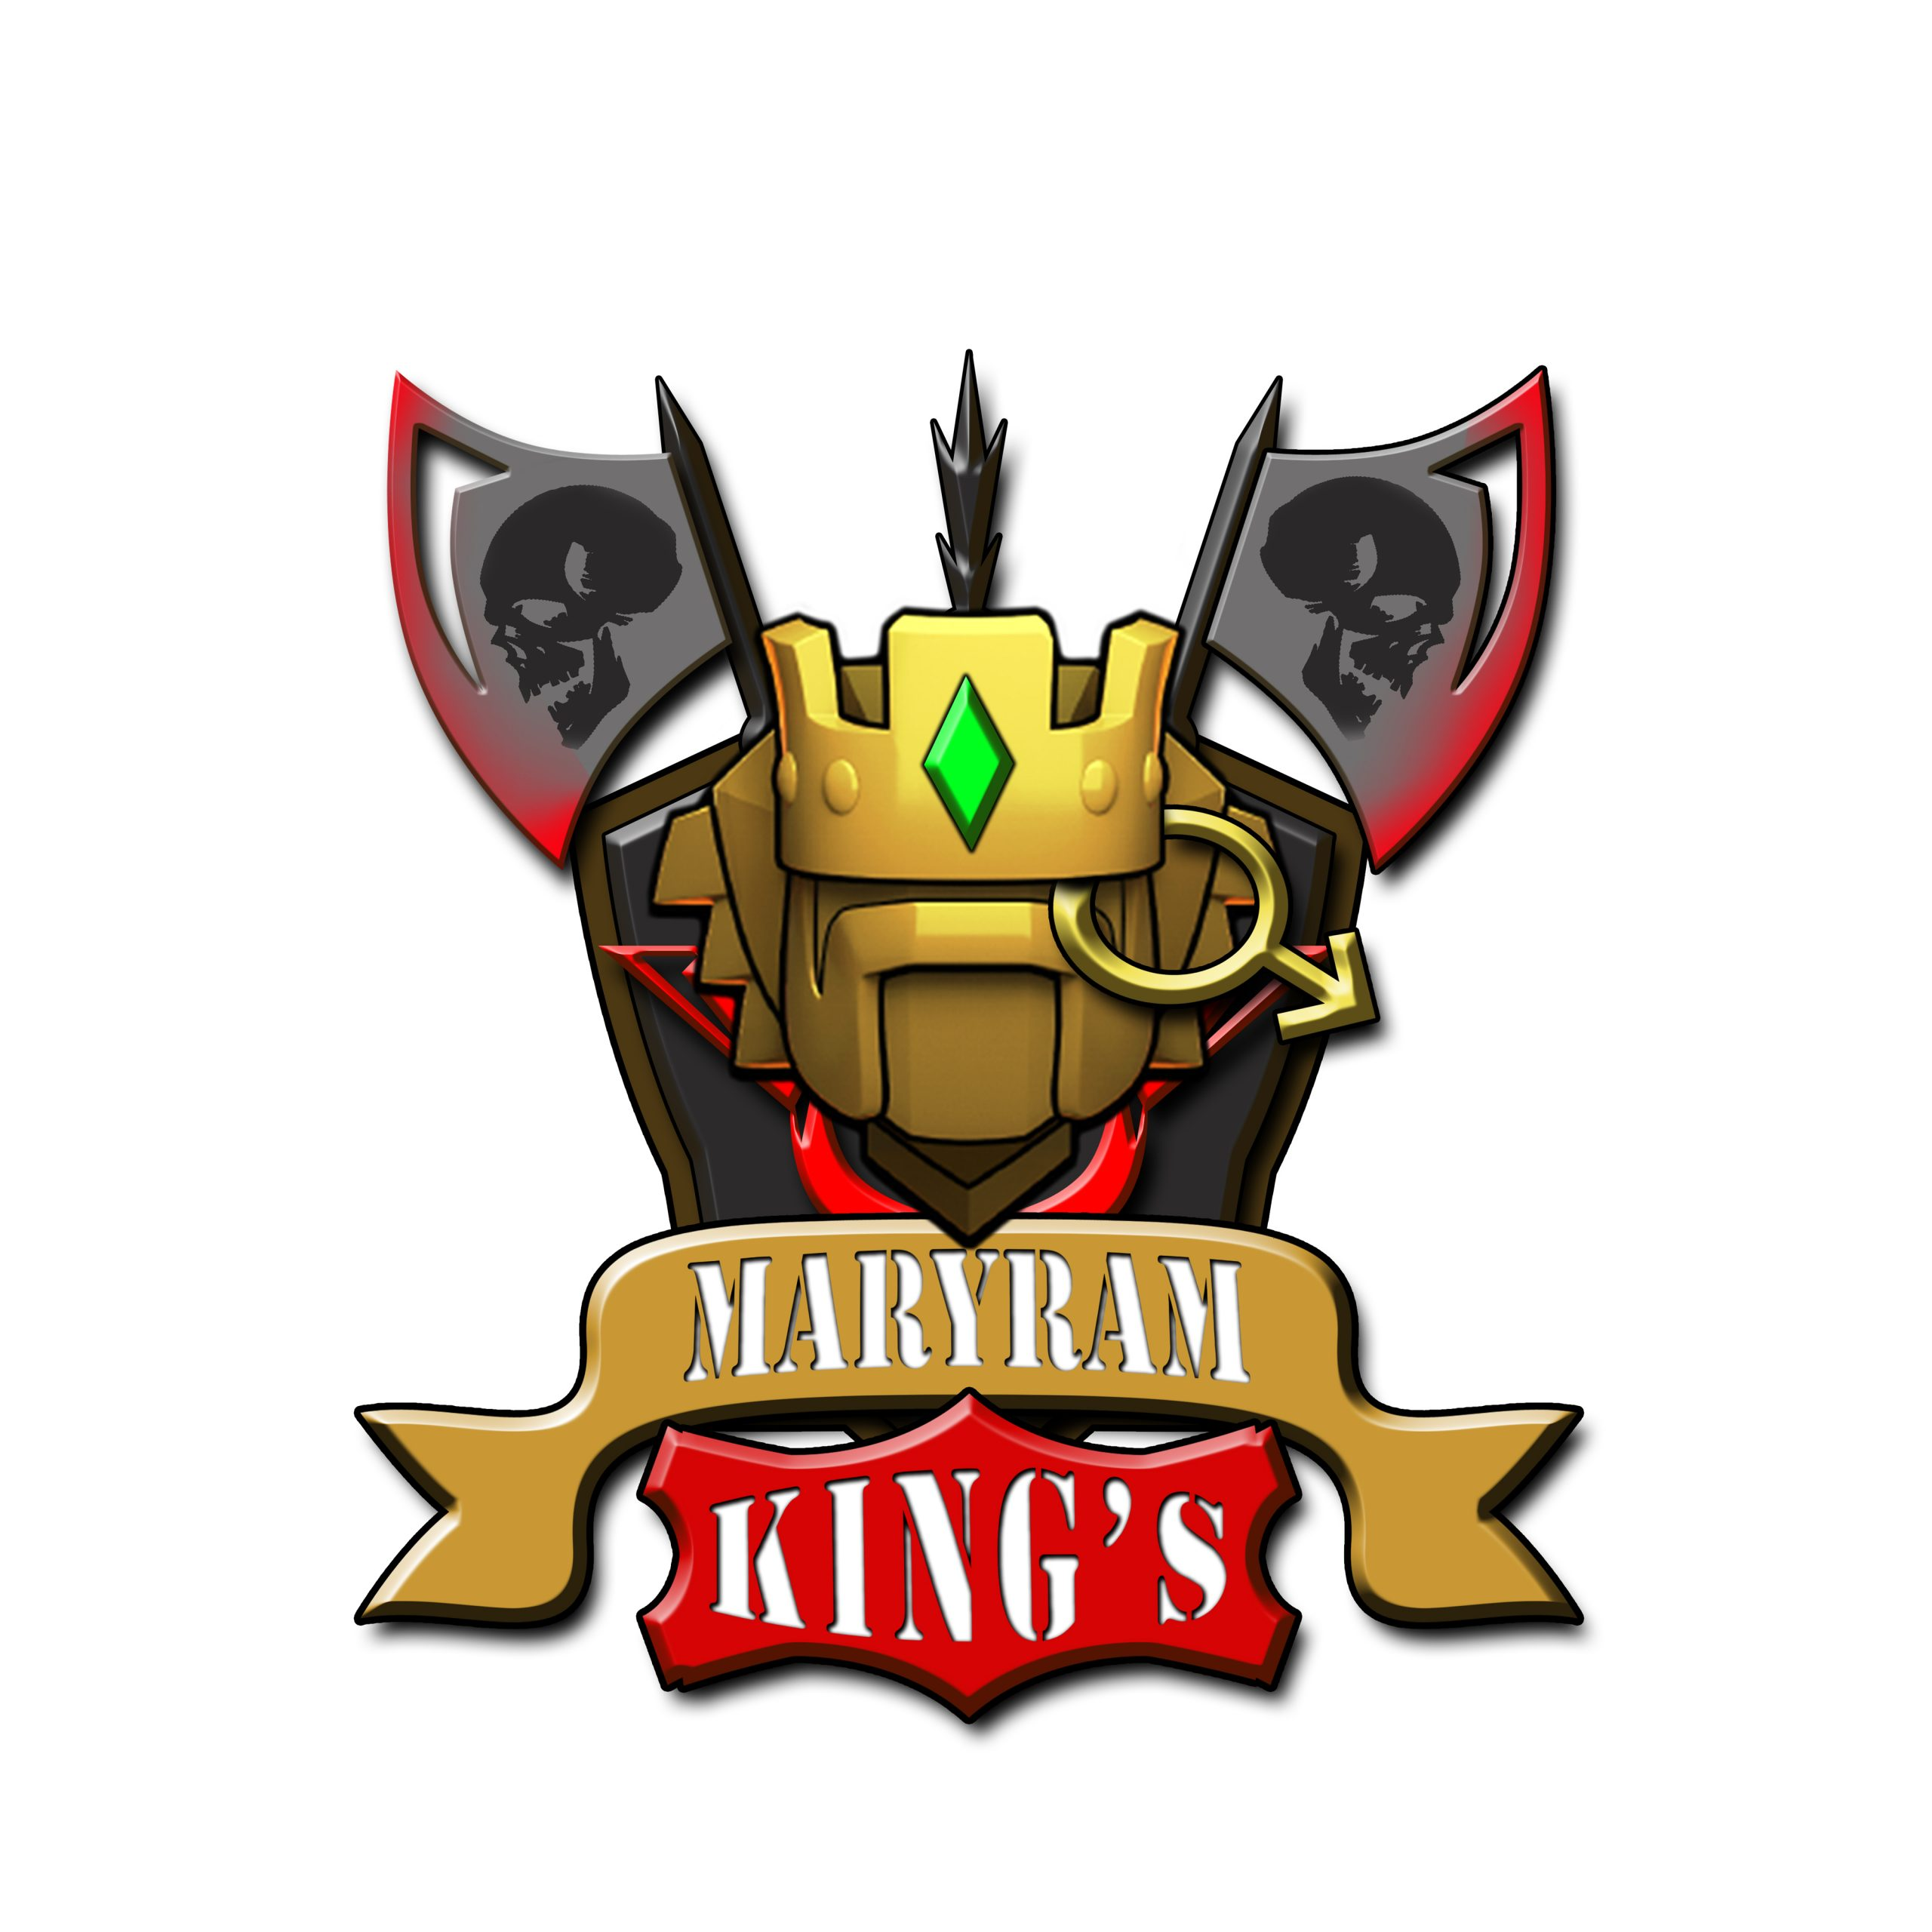 Clash of clan badge logo